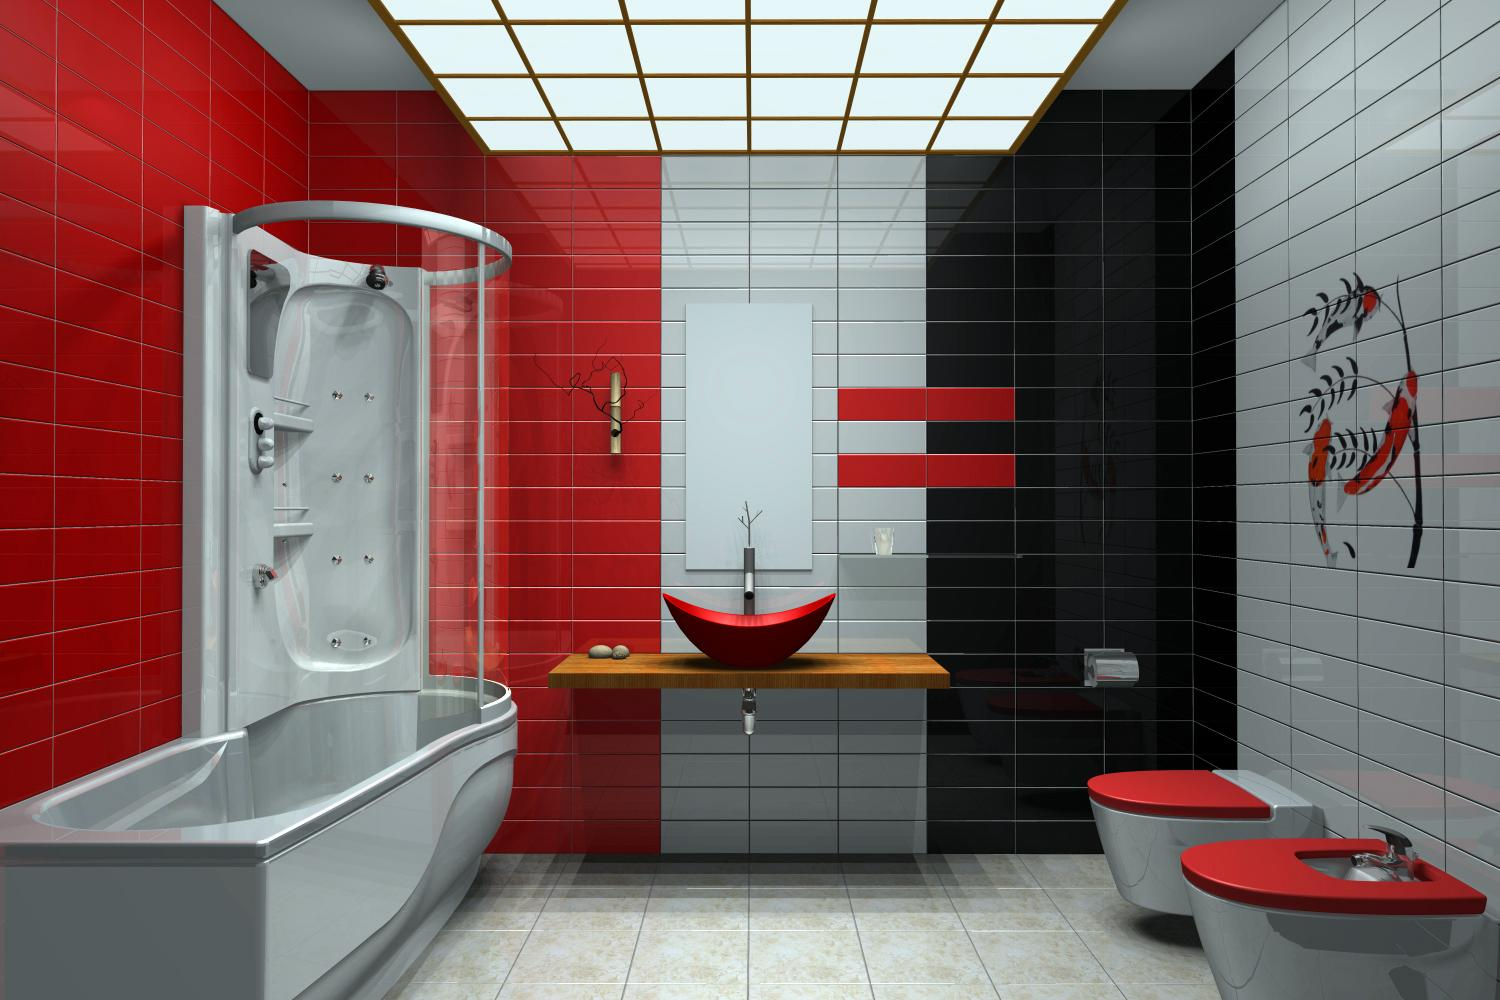 Unique images collection multi tile color style modern - Salle de bain rouge et noir ...